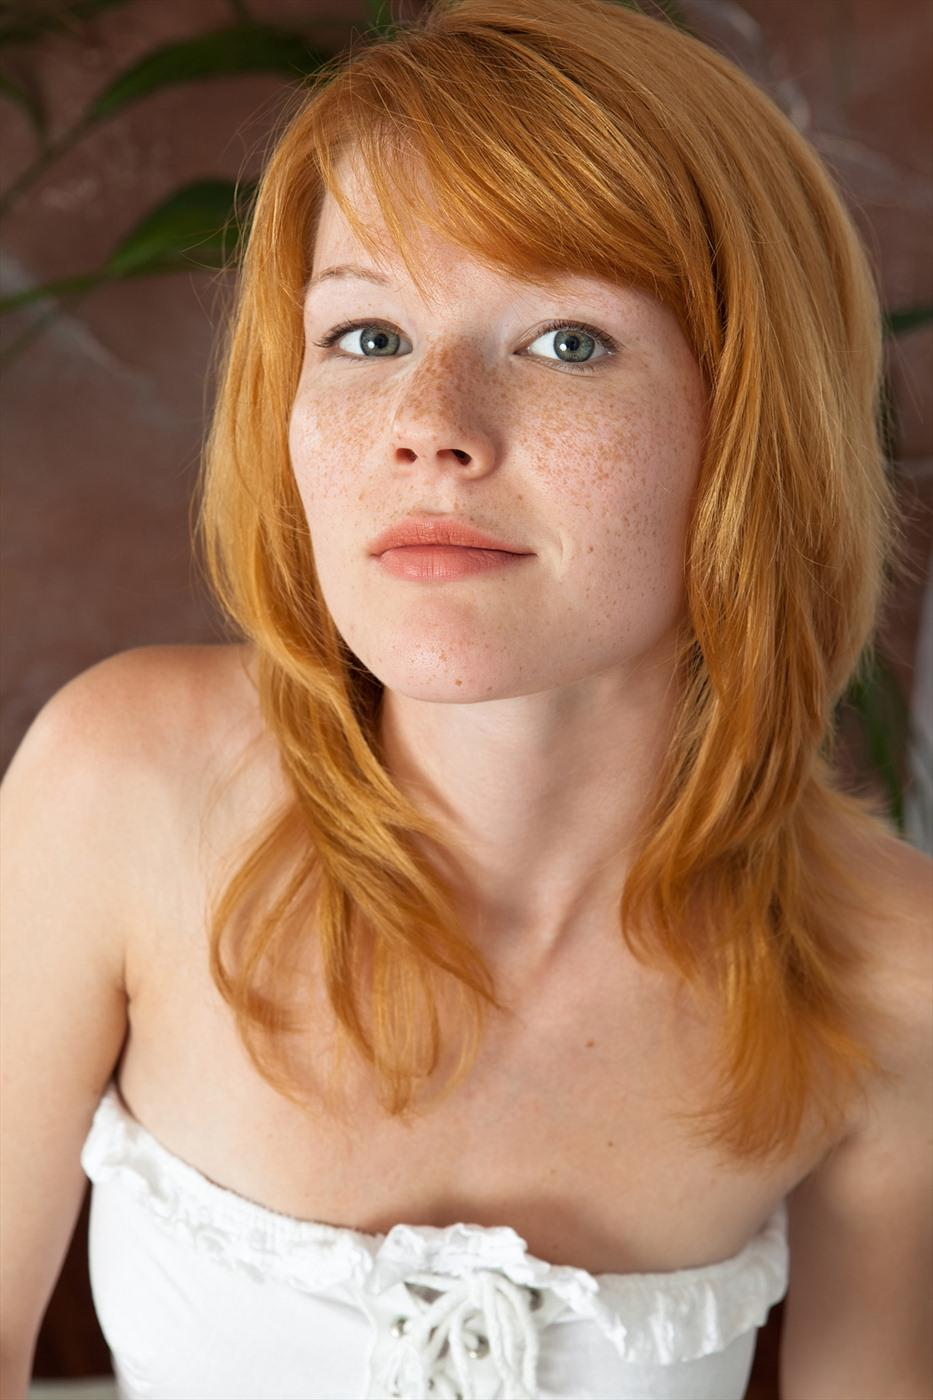 Nude Redhead Titania Rocks Her Huge Boobs And Hairy Muff In The Shower Redhead Red Boobs Nude